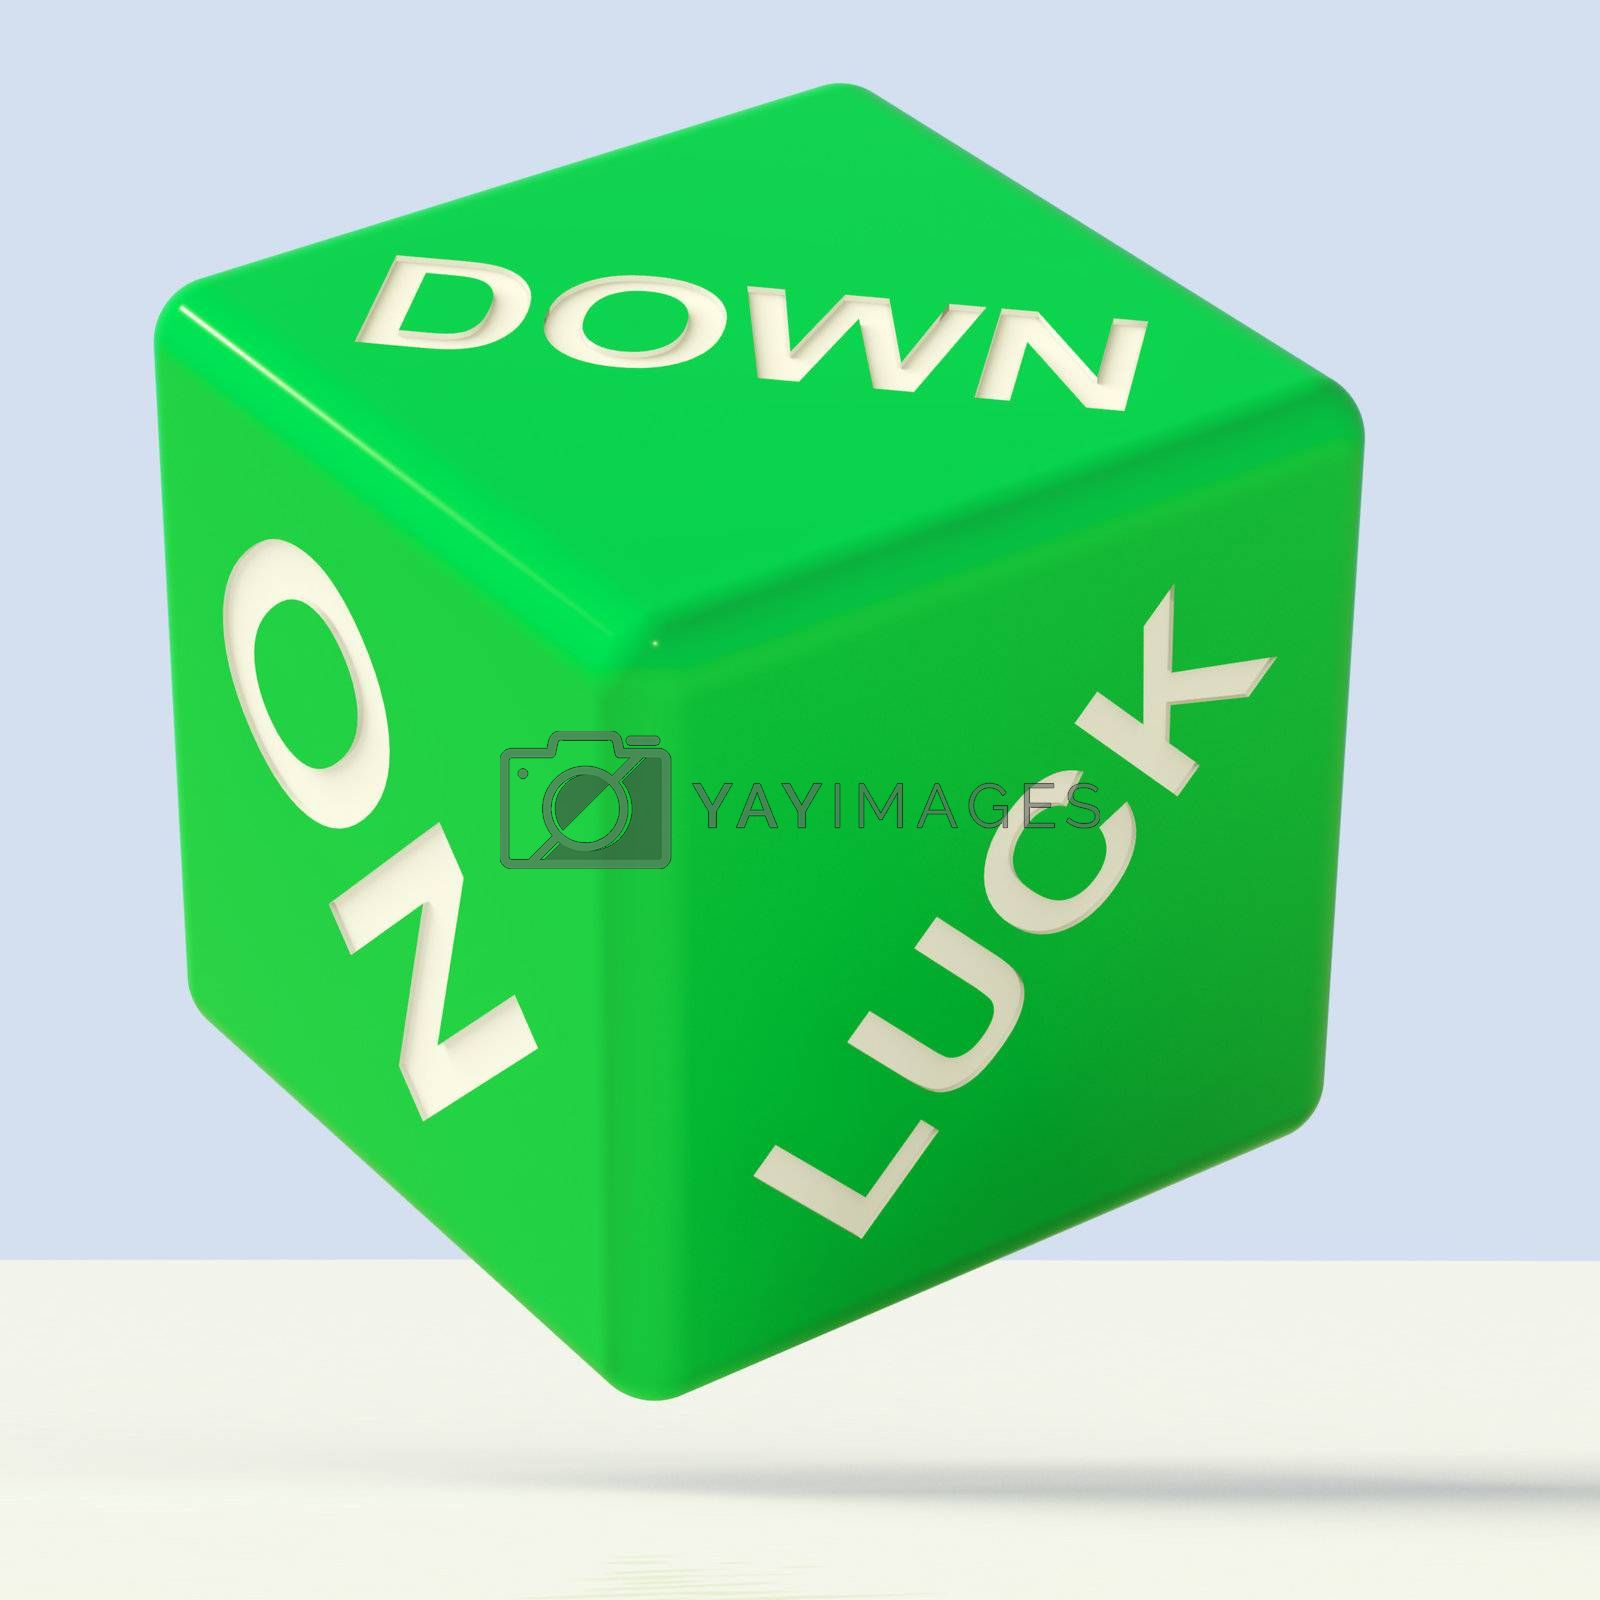 Down On Luck Green Dice Meaning Failure And Losing